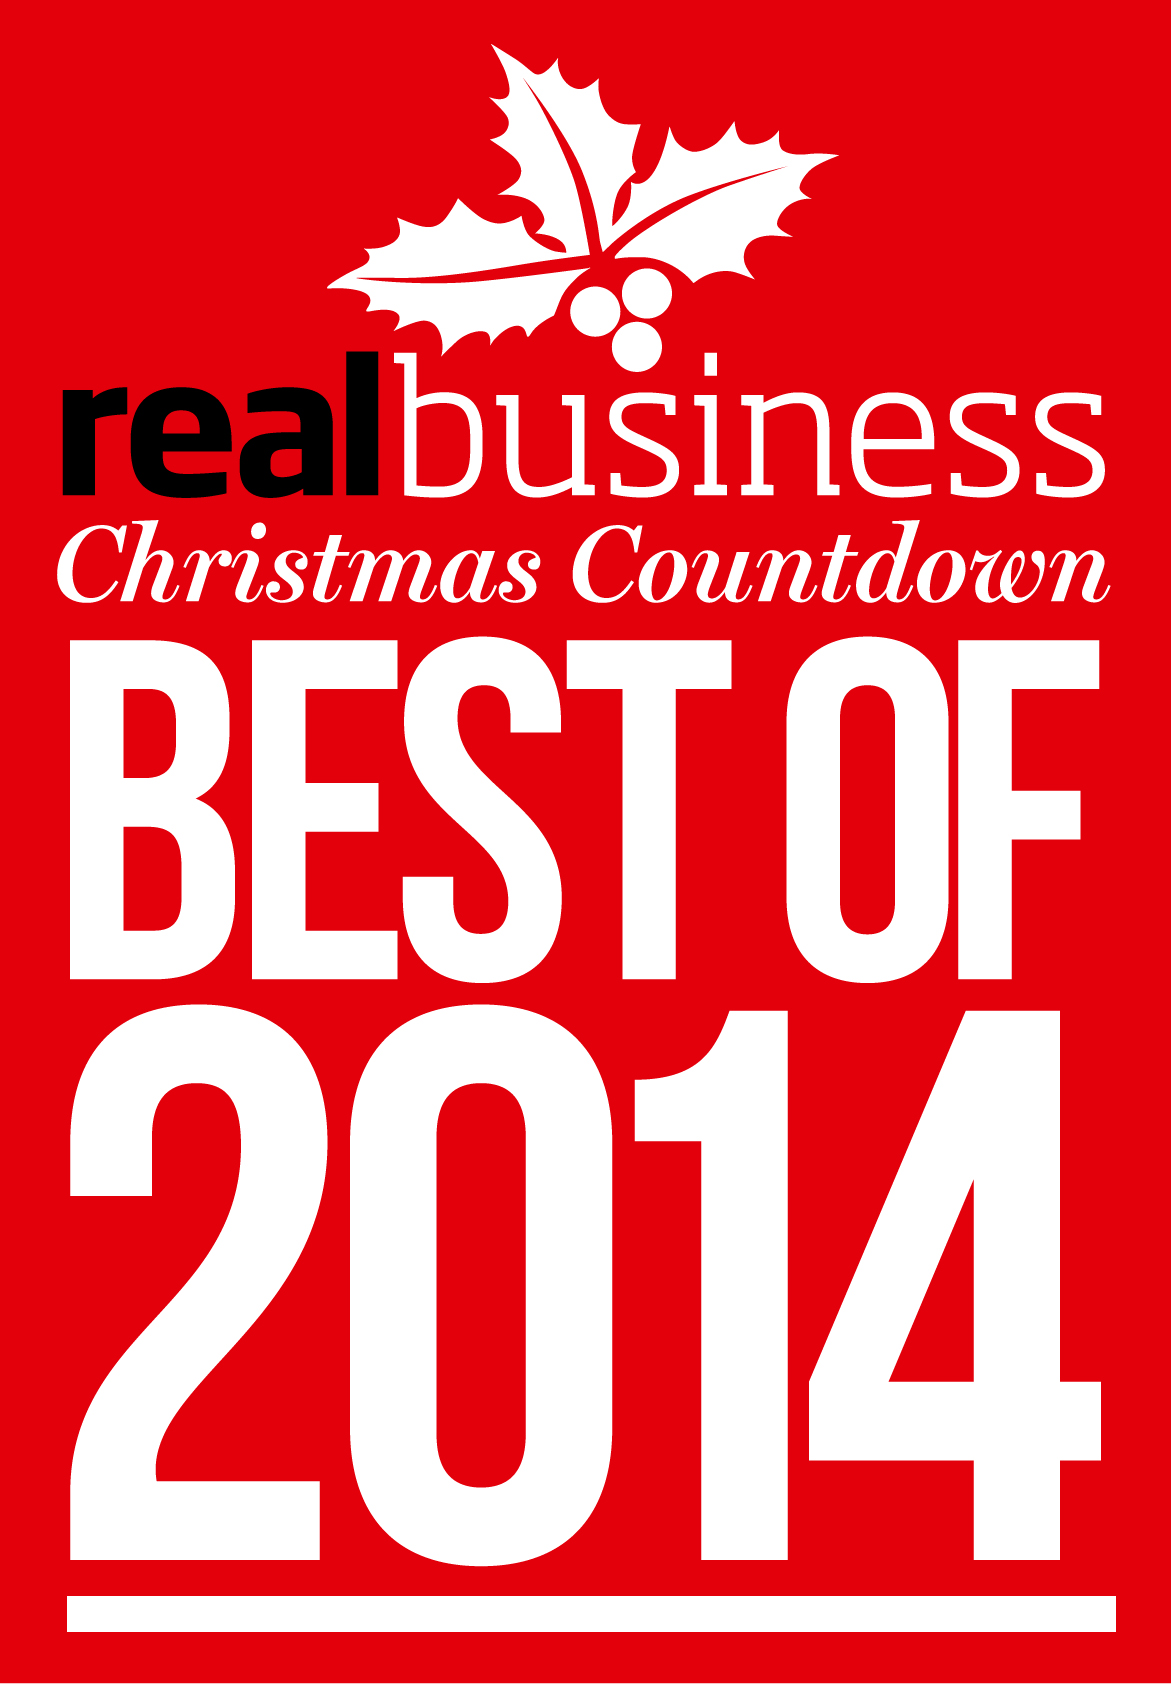 Real Business Christmas Countdown: The Best of 2014: 9 December